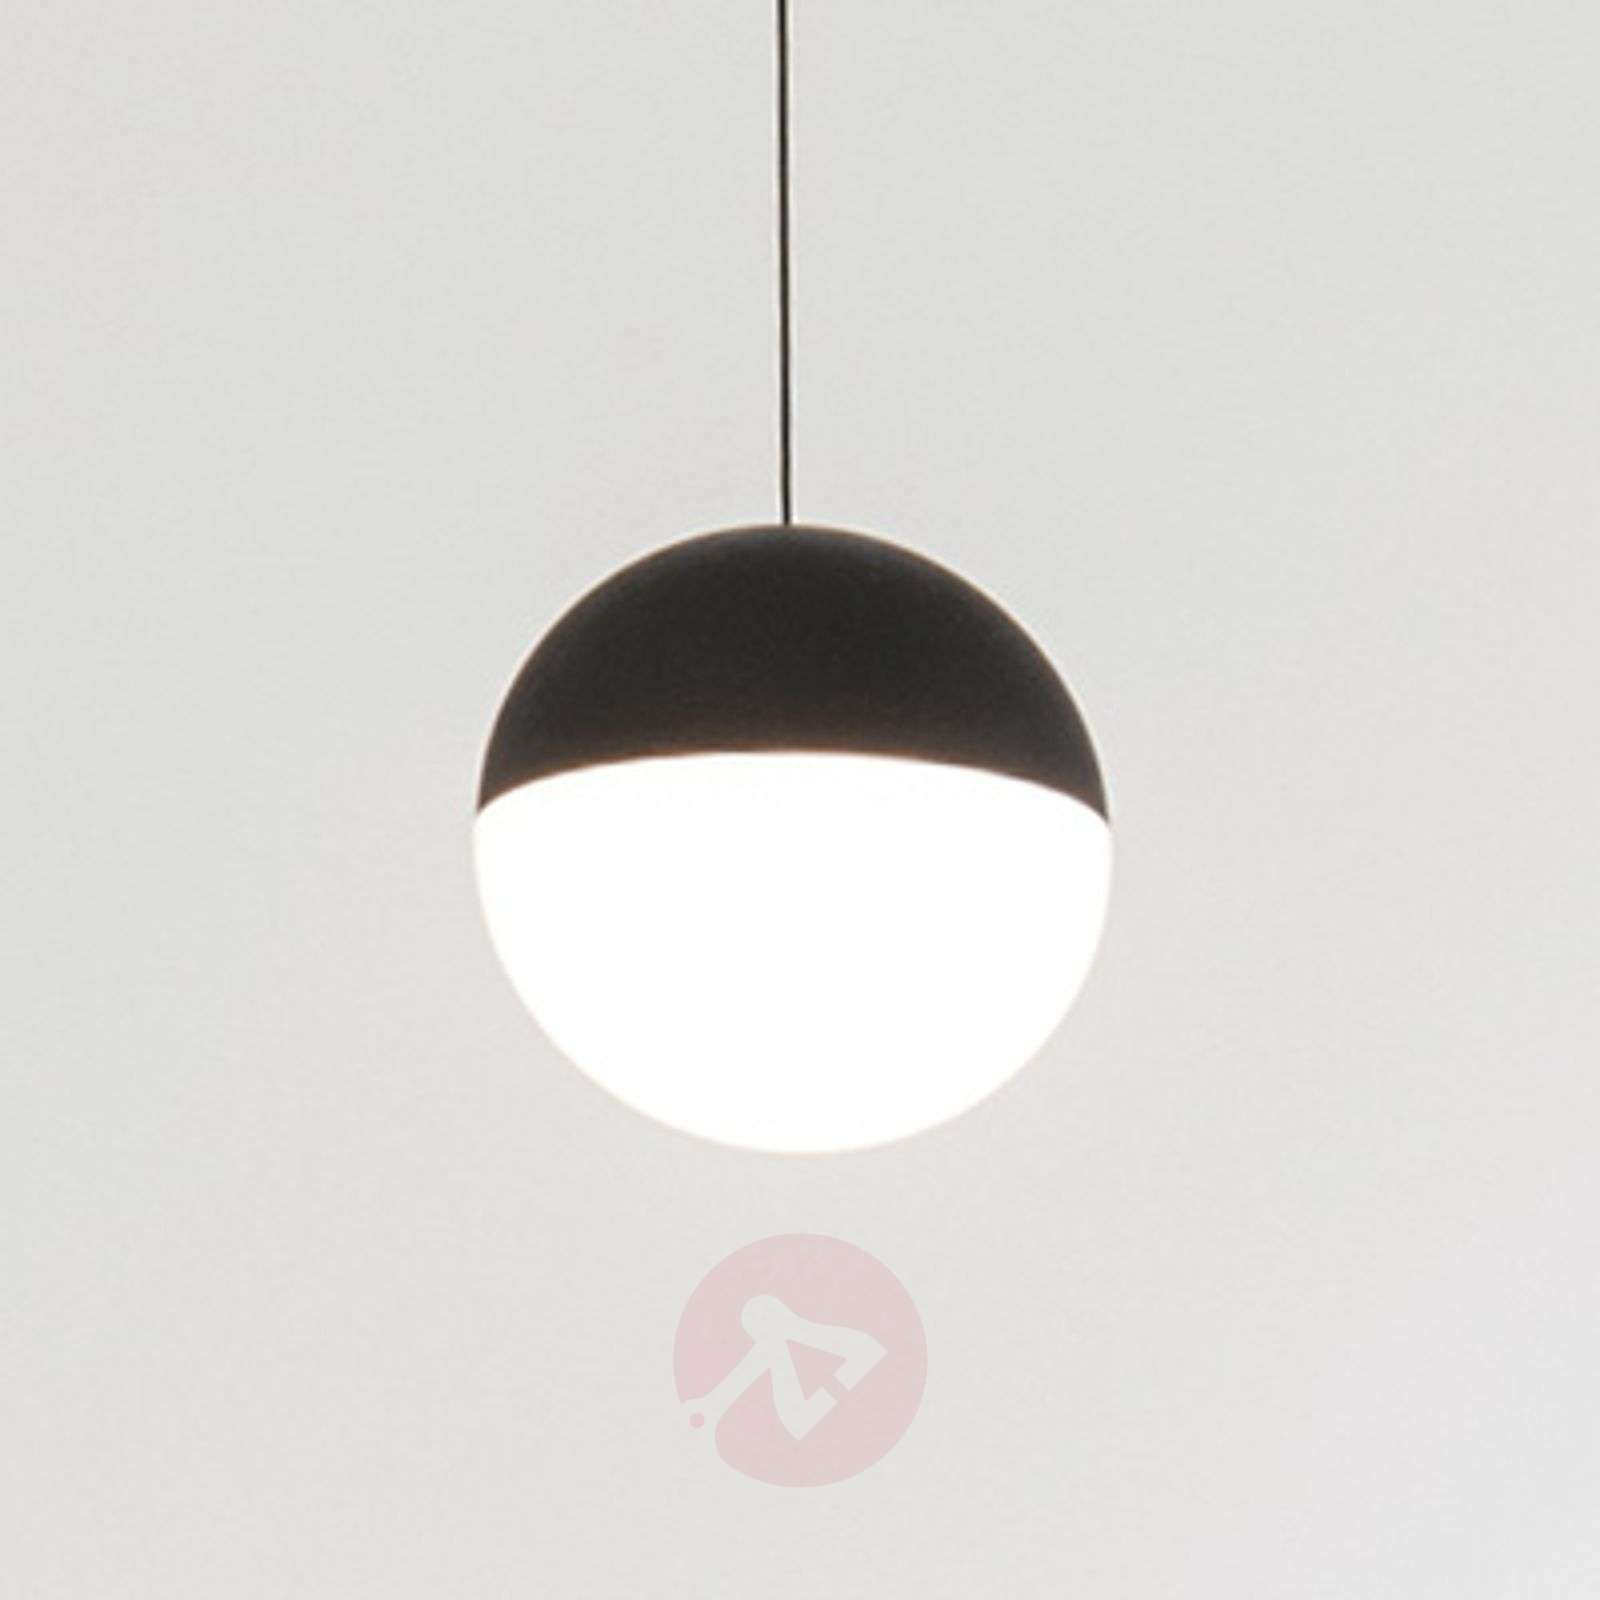 new products 82d52 49b04 String light spherical pendant lamp, 12 m cable